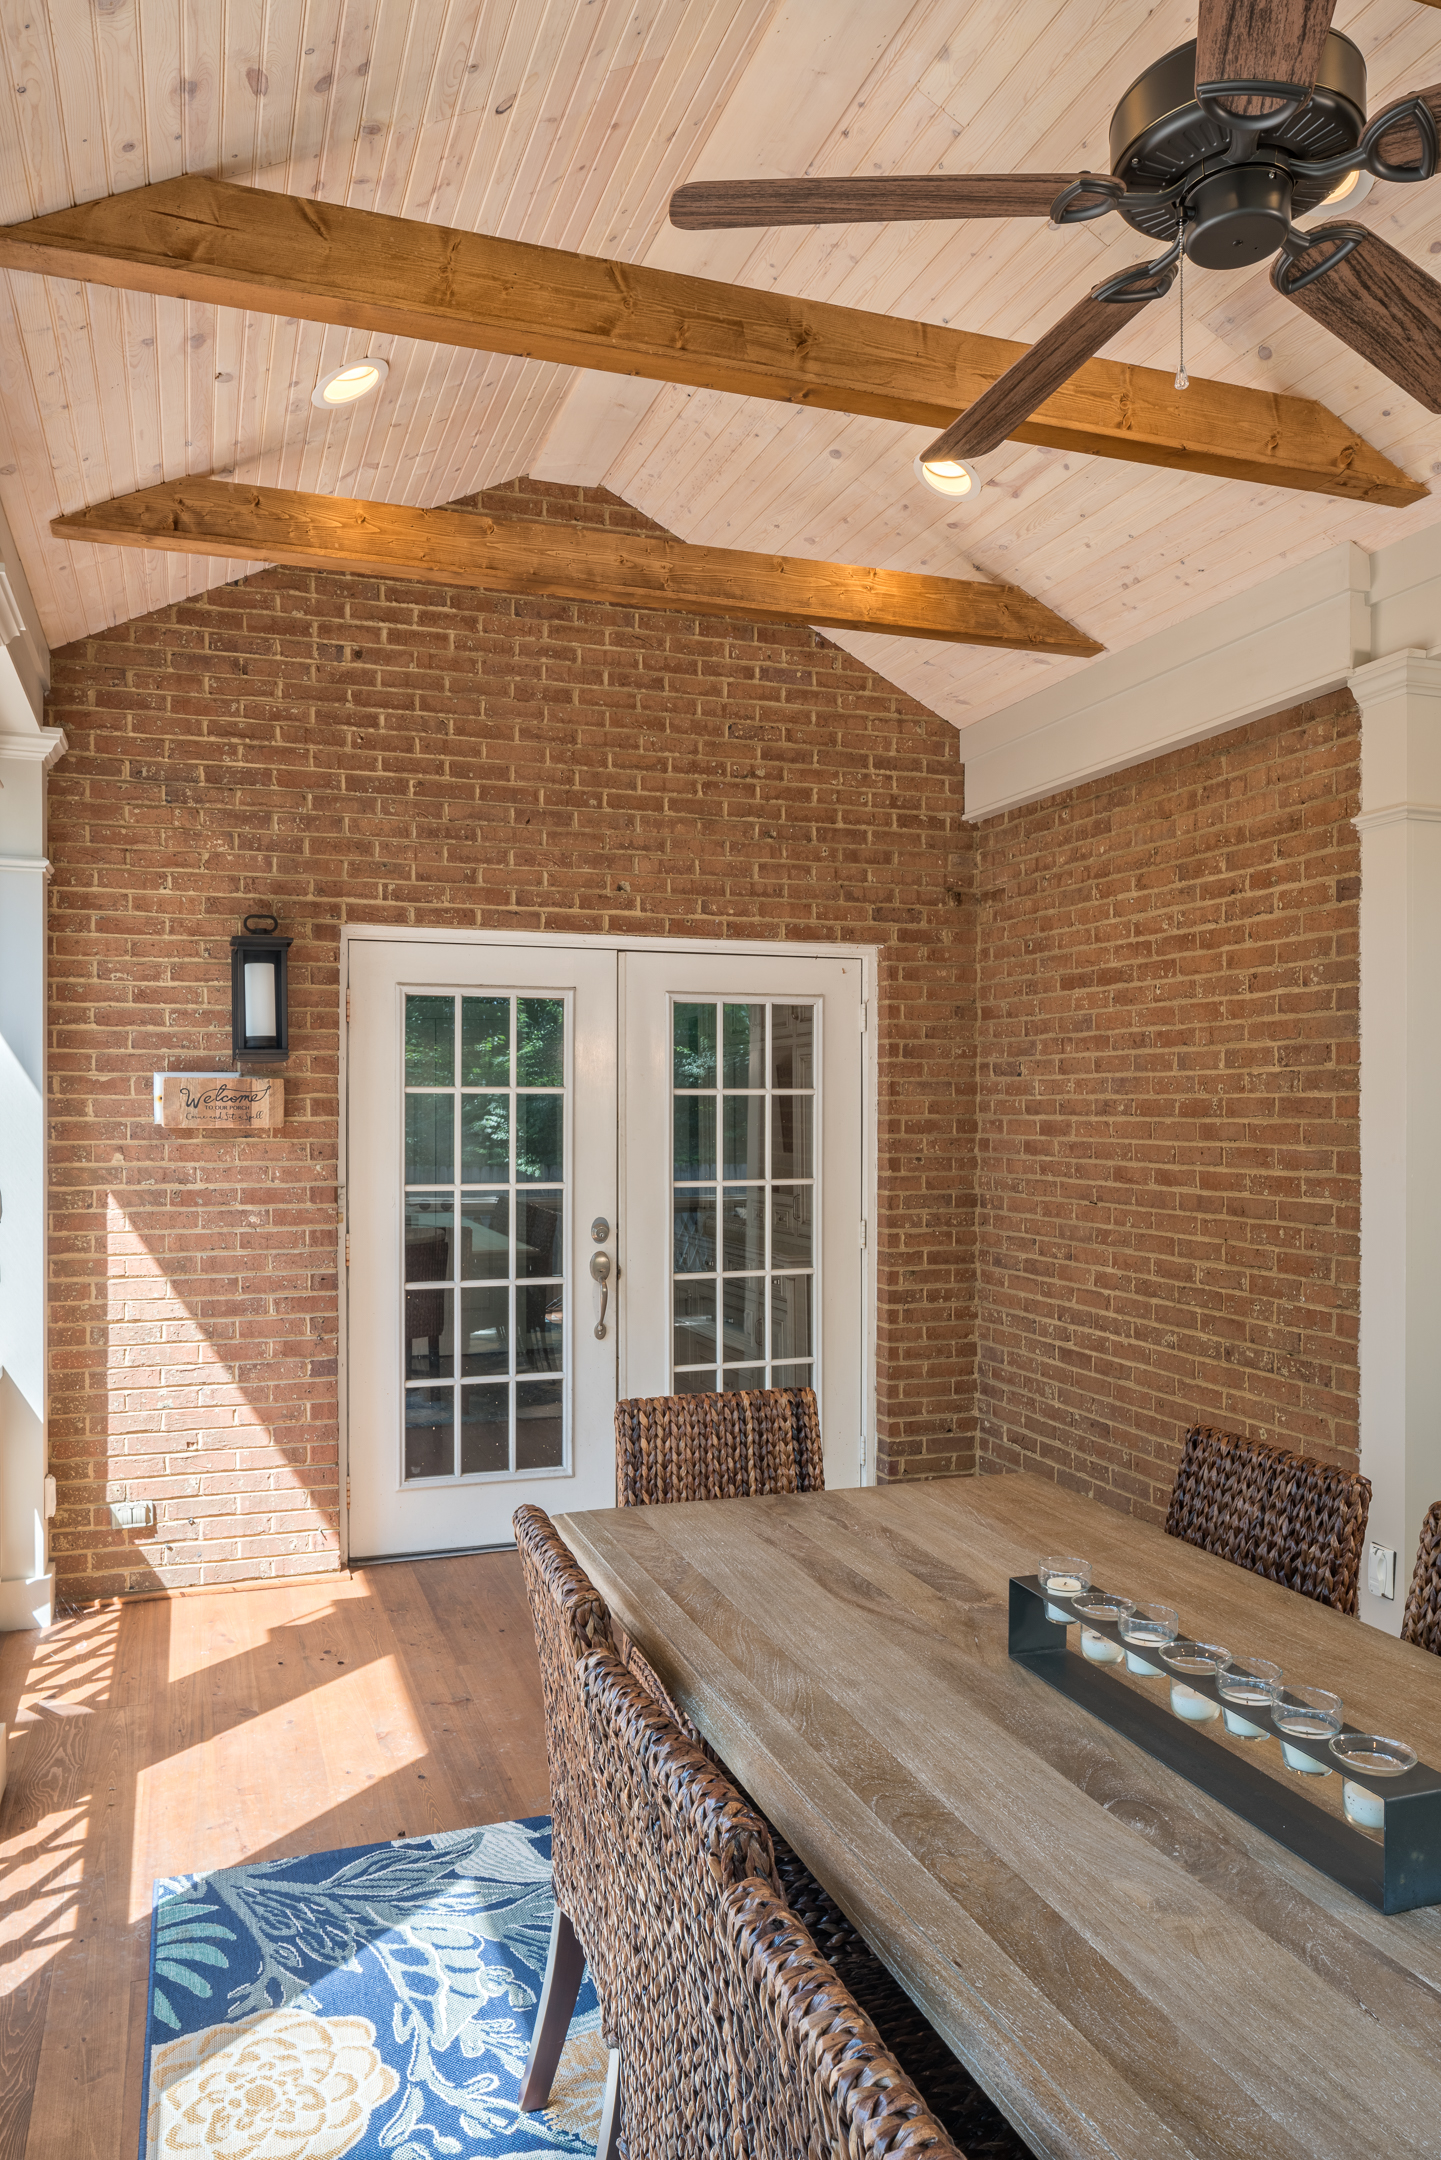 With A Screened Porch Like This You Too Would Be Just